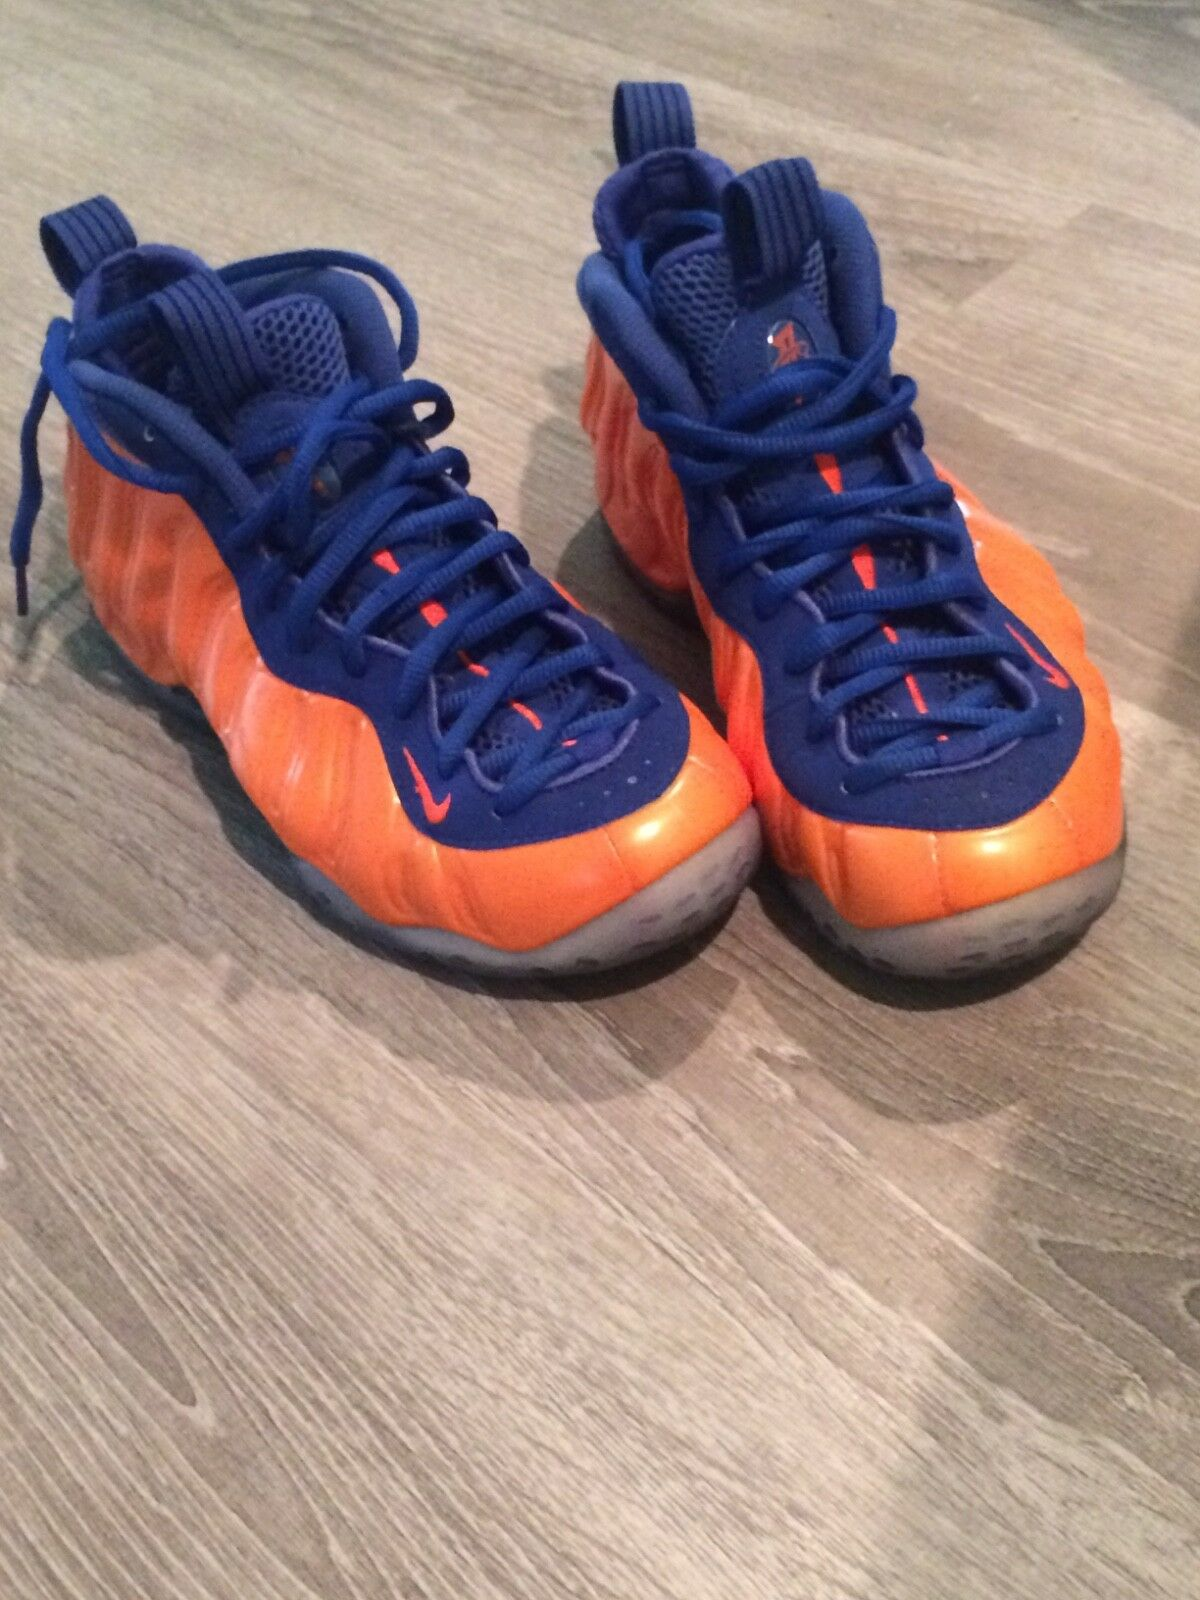 68711c8218 Foamposite One Size 7.5 Air Nike nsdusp2482-new shoes - formal ...